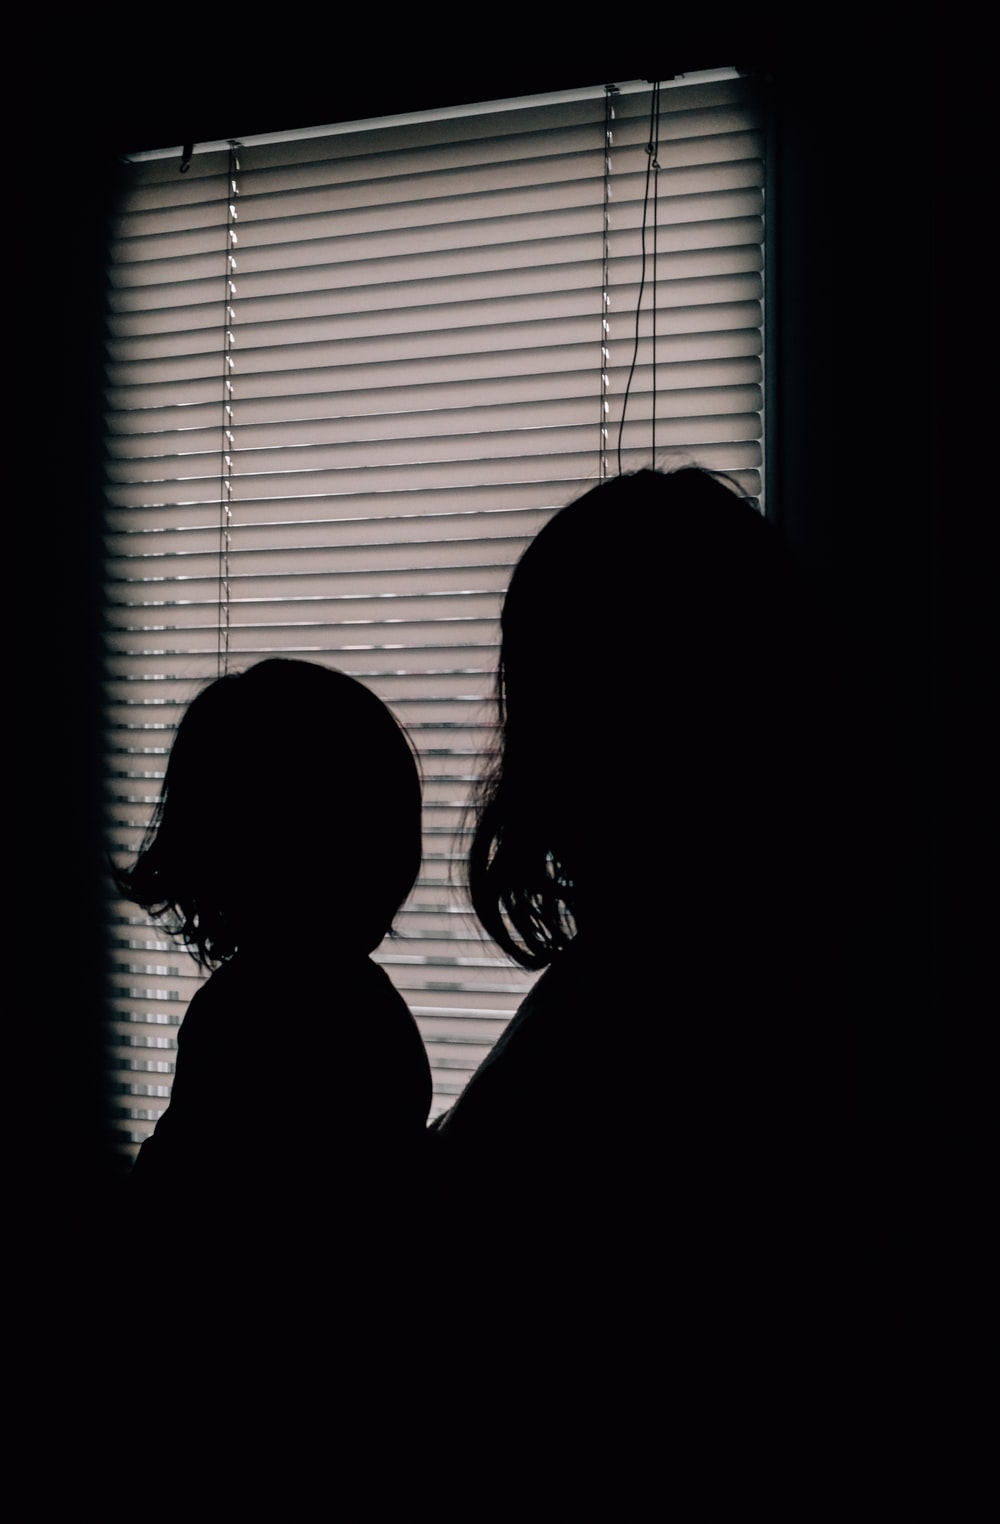 silhouette of 2 women standing near window with white window blinds